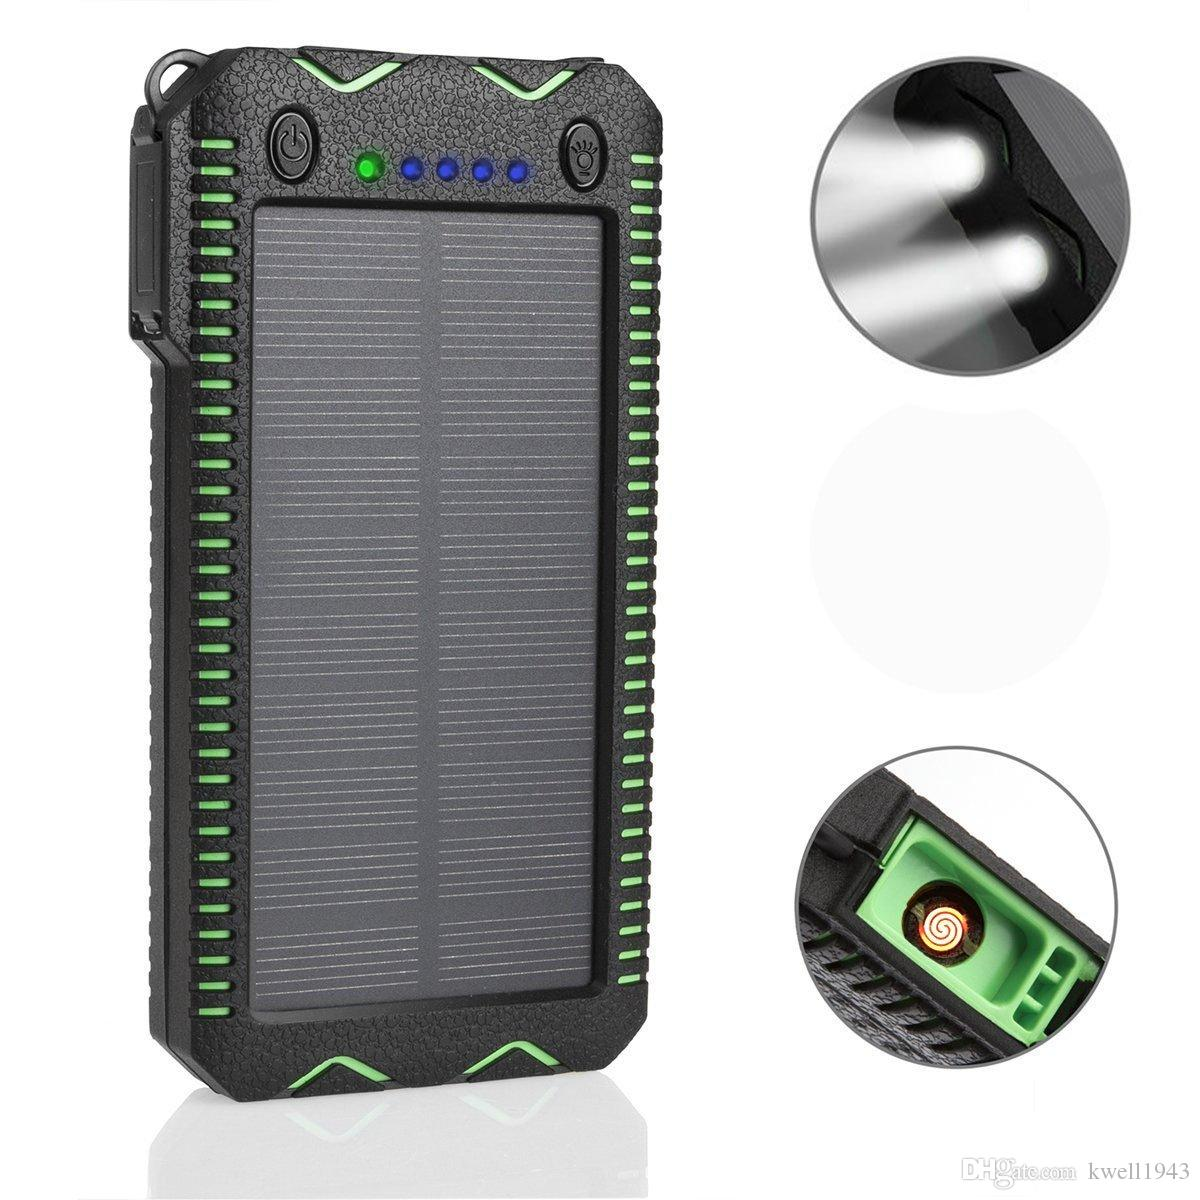 huge selection of b253a a7260 500000mAh WATERPROOF SOLAR Power Bank Charger Battery External SAMSUNG  Iphone Smart Phone